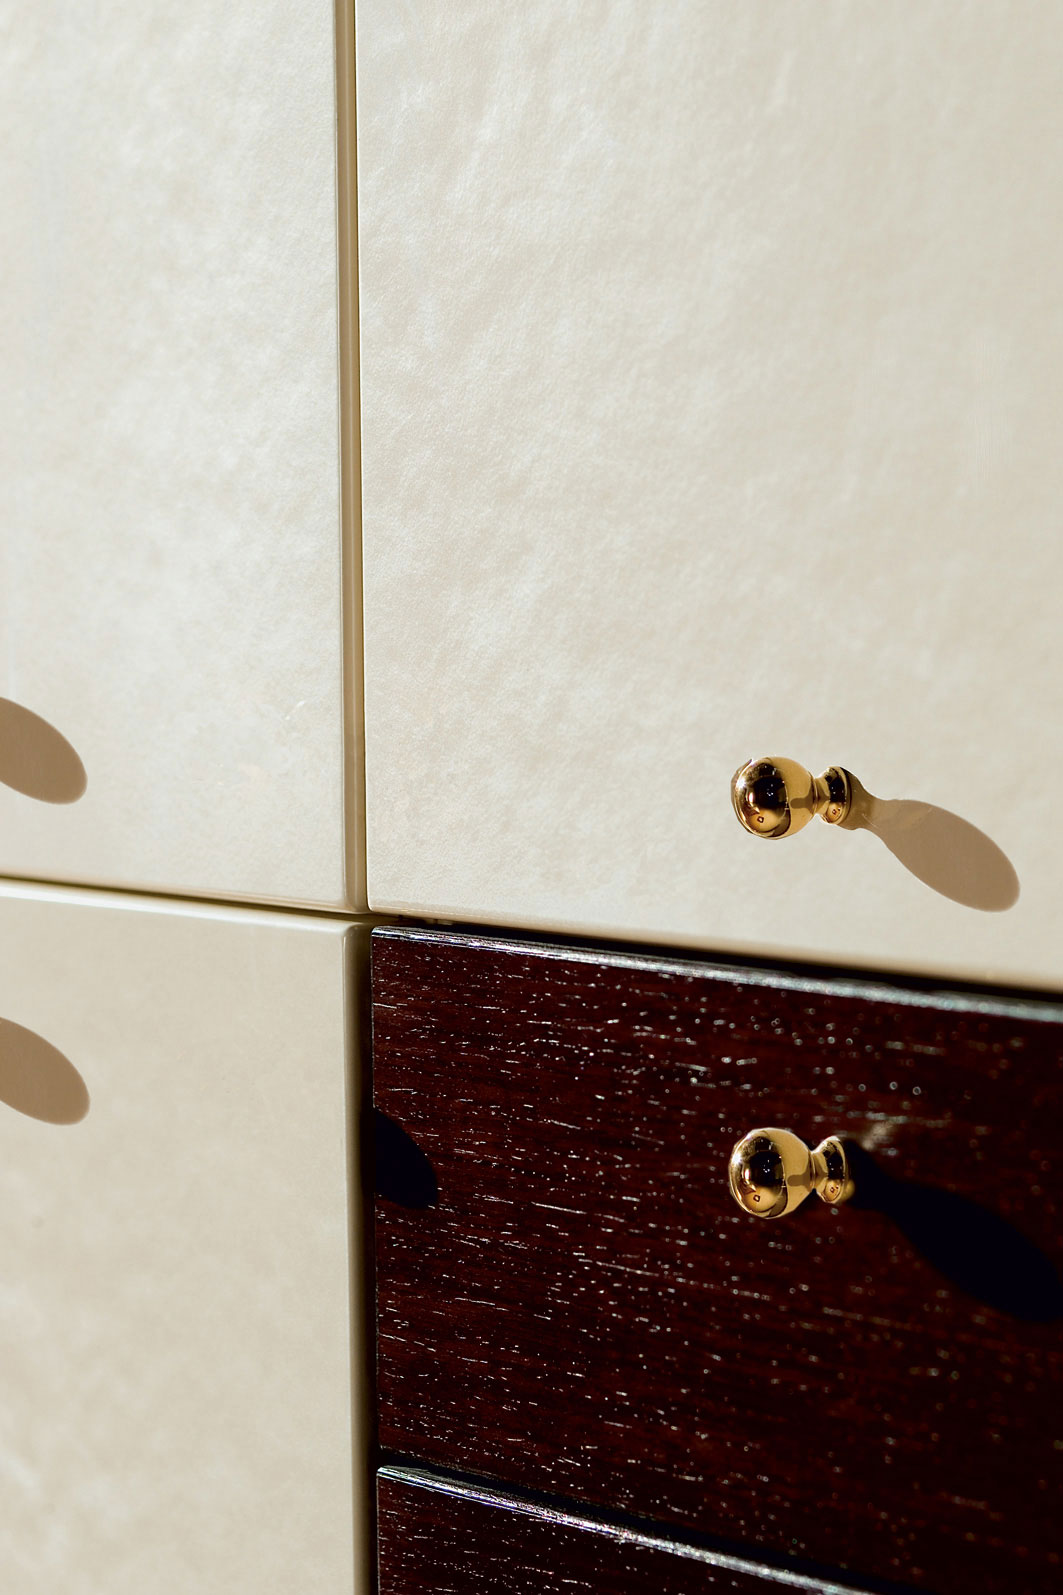 french cabinetry modern bathroom details 1